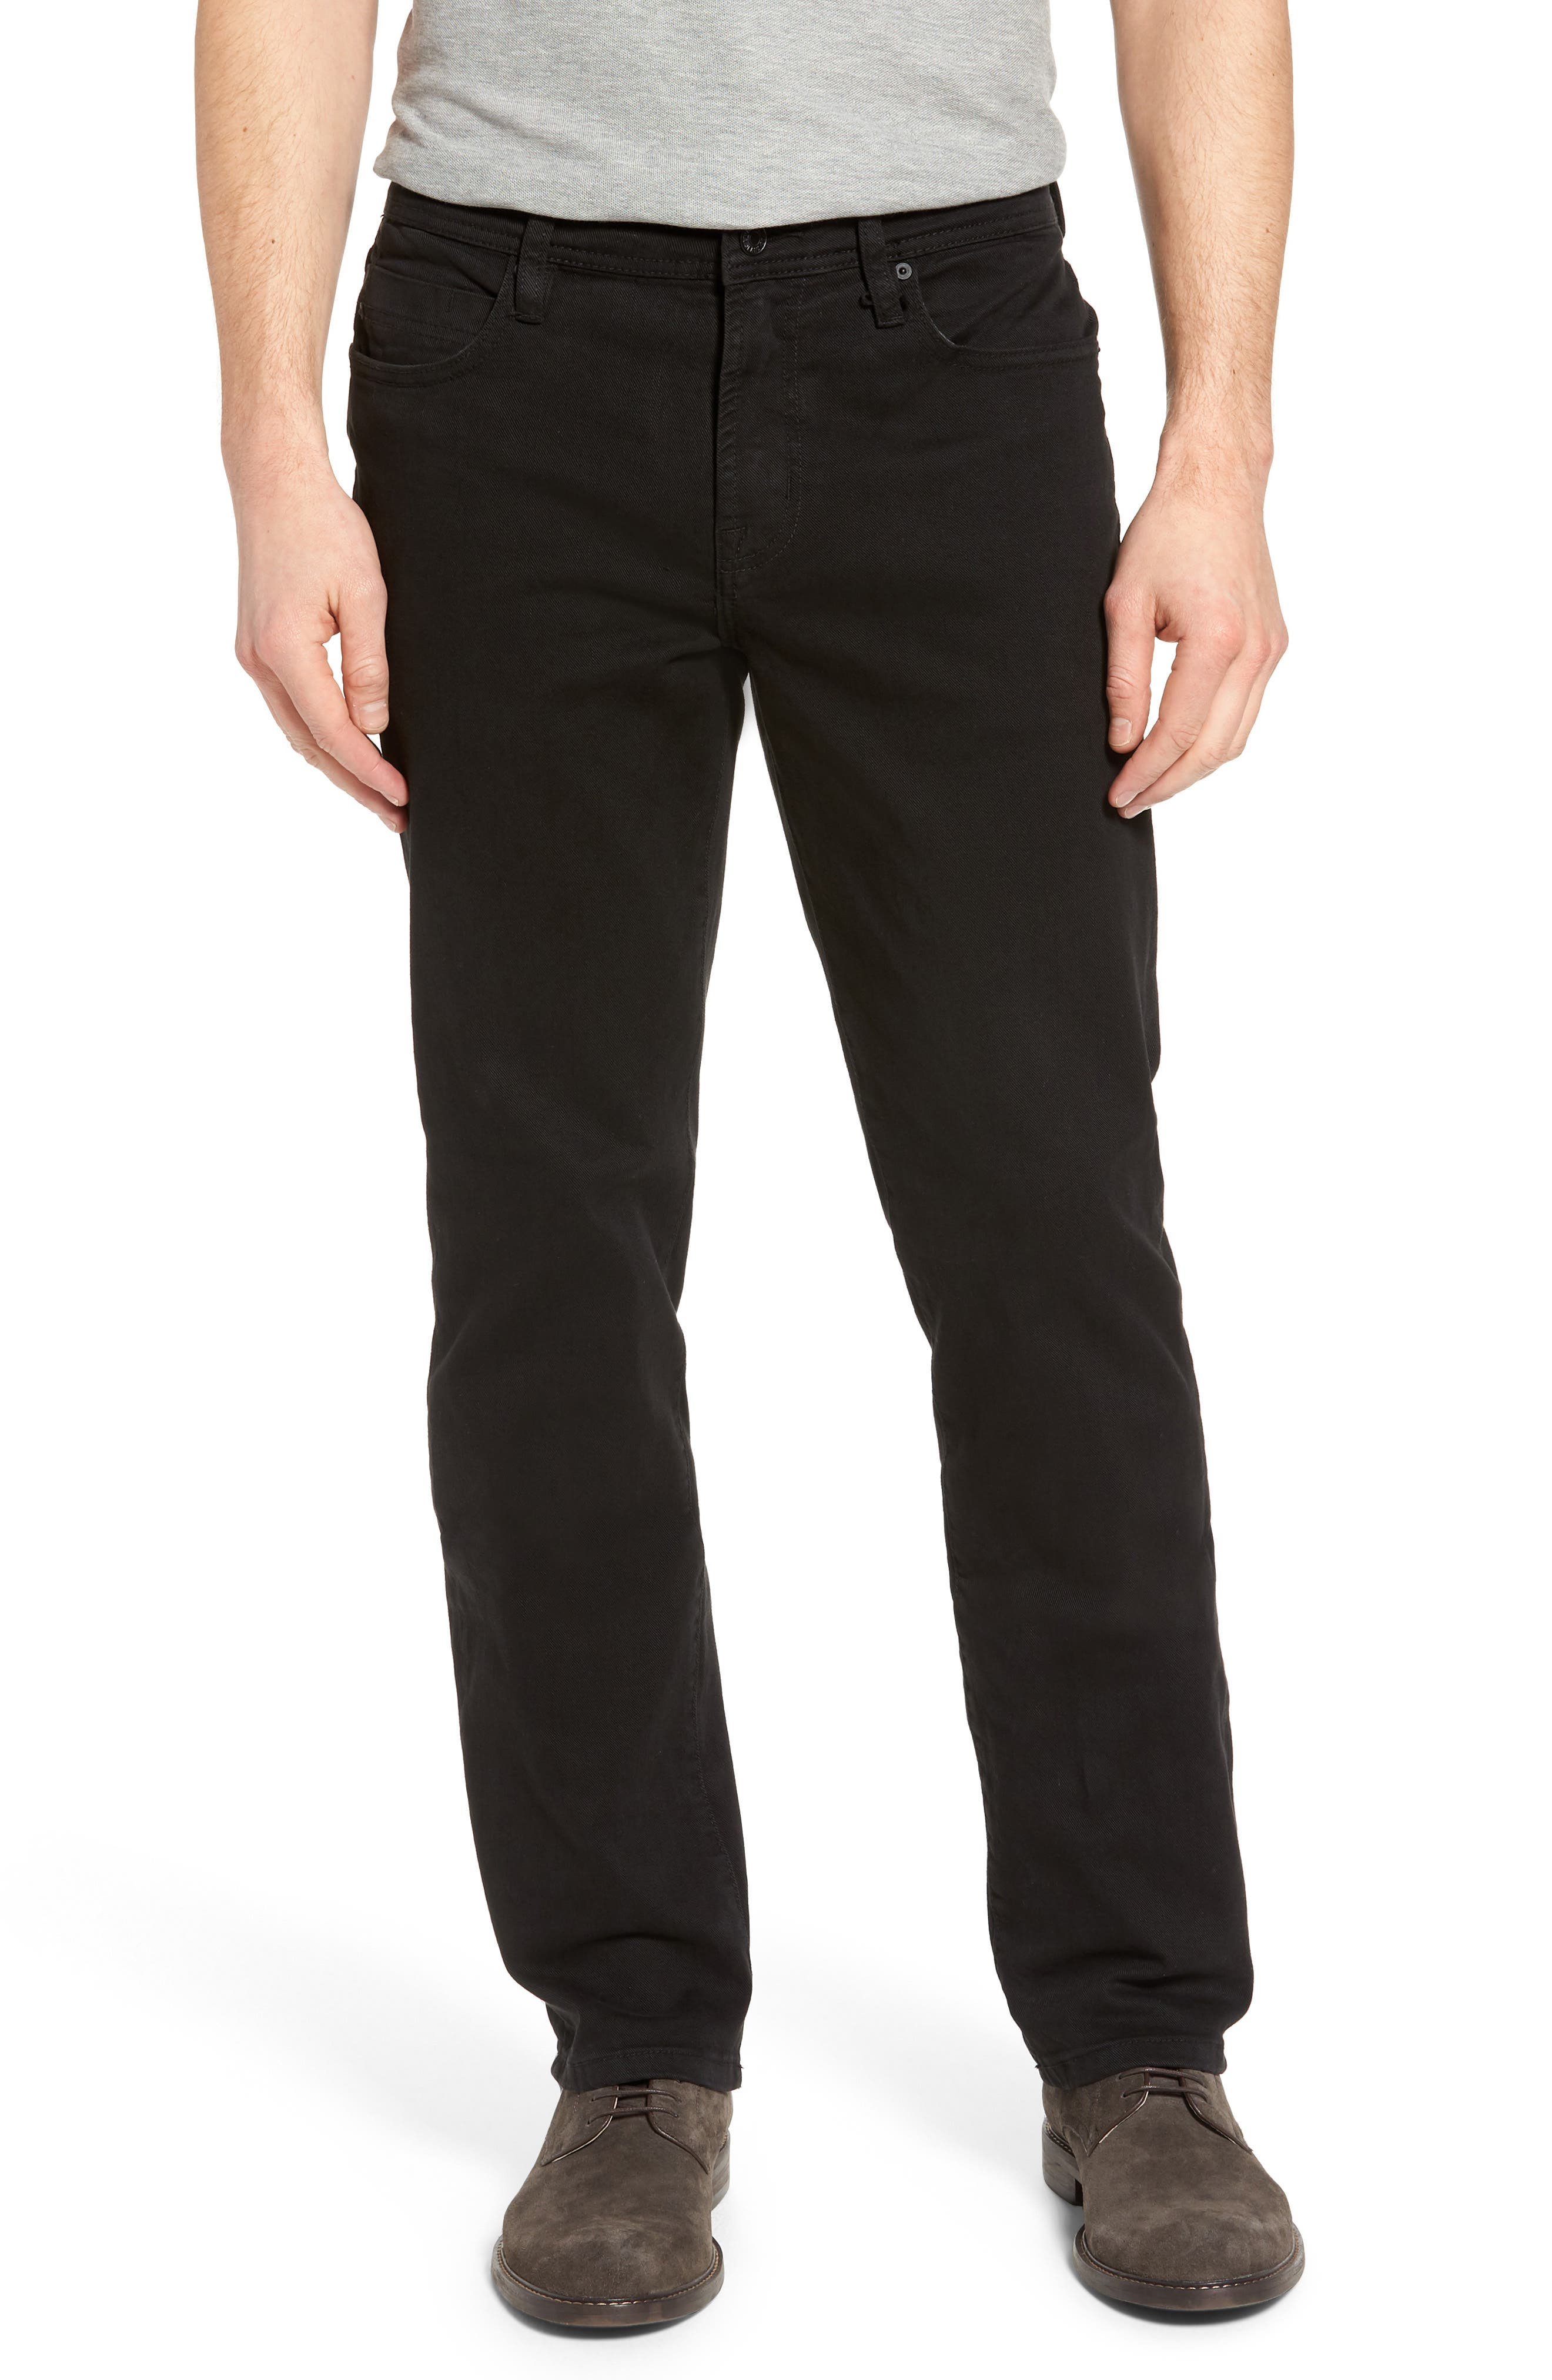 Jeans Co. Regent Relaxed Fit Jeans,                             Main thumbnail 1, color,                             Black Rinse